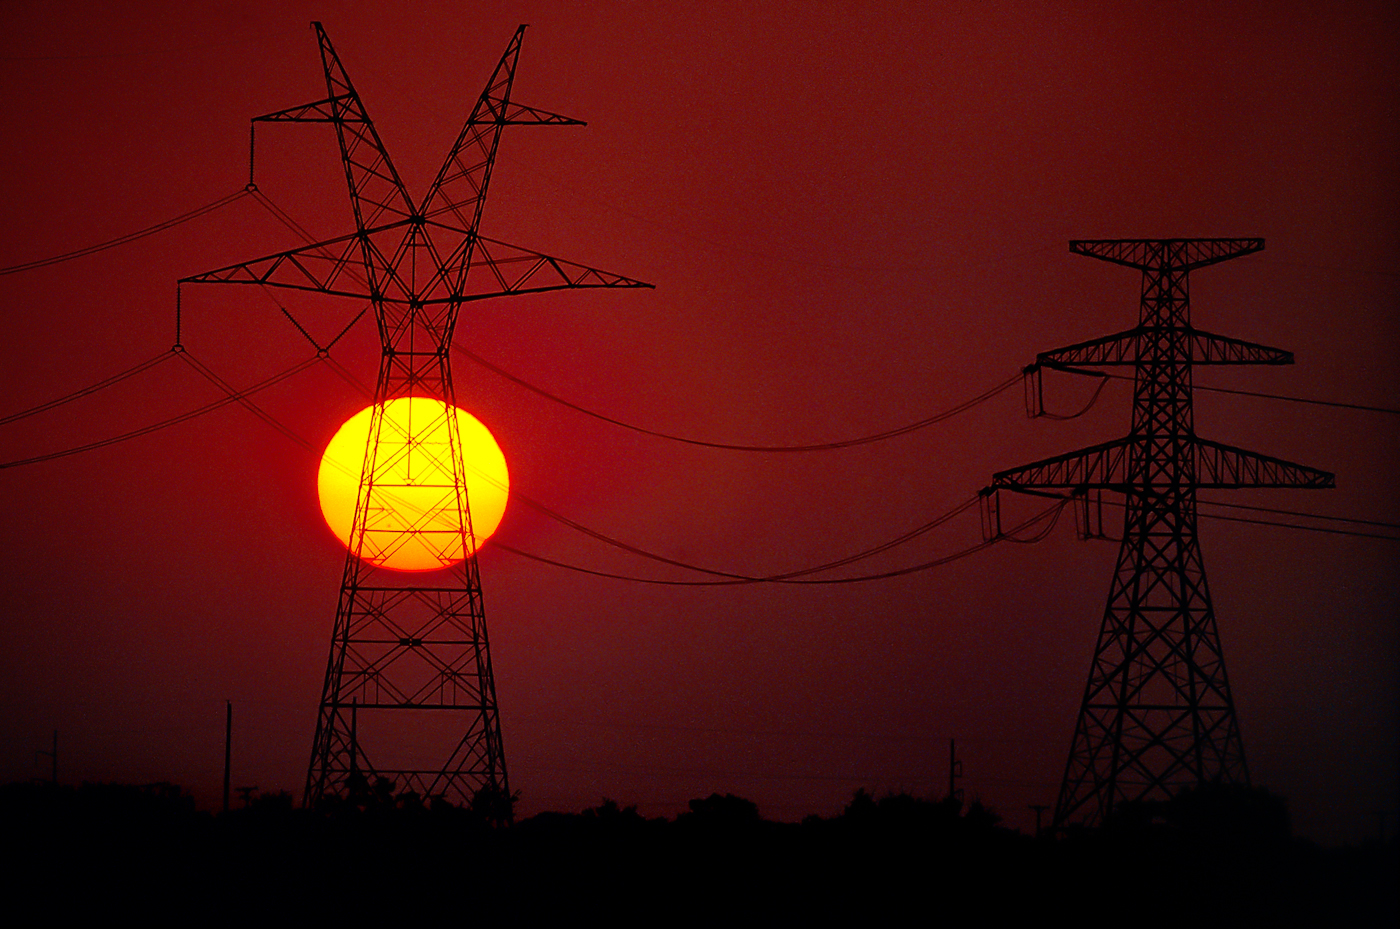 powerline sunset.jpg